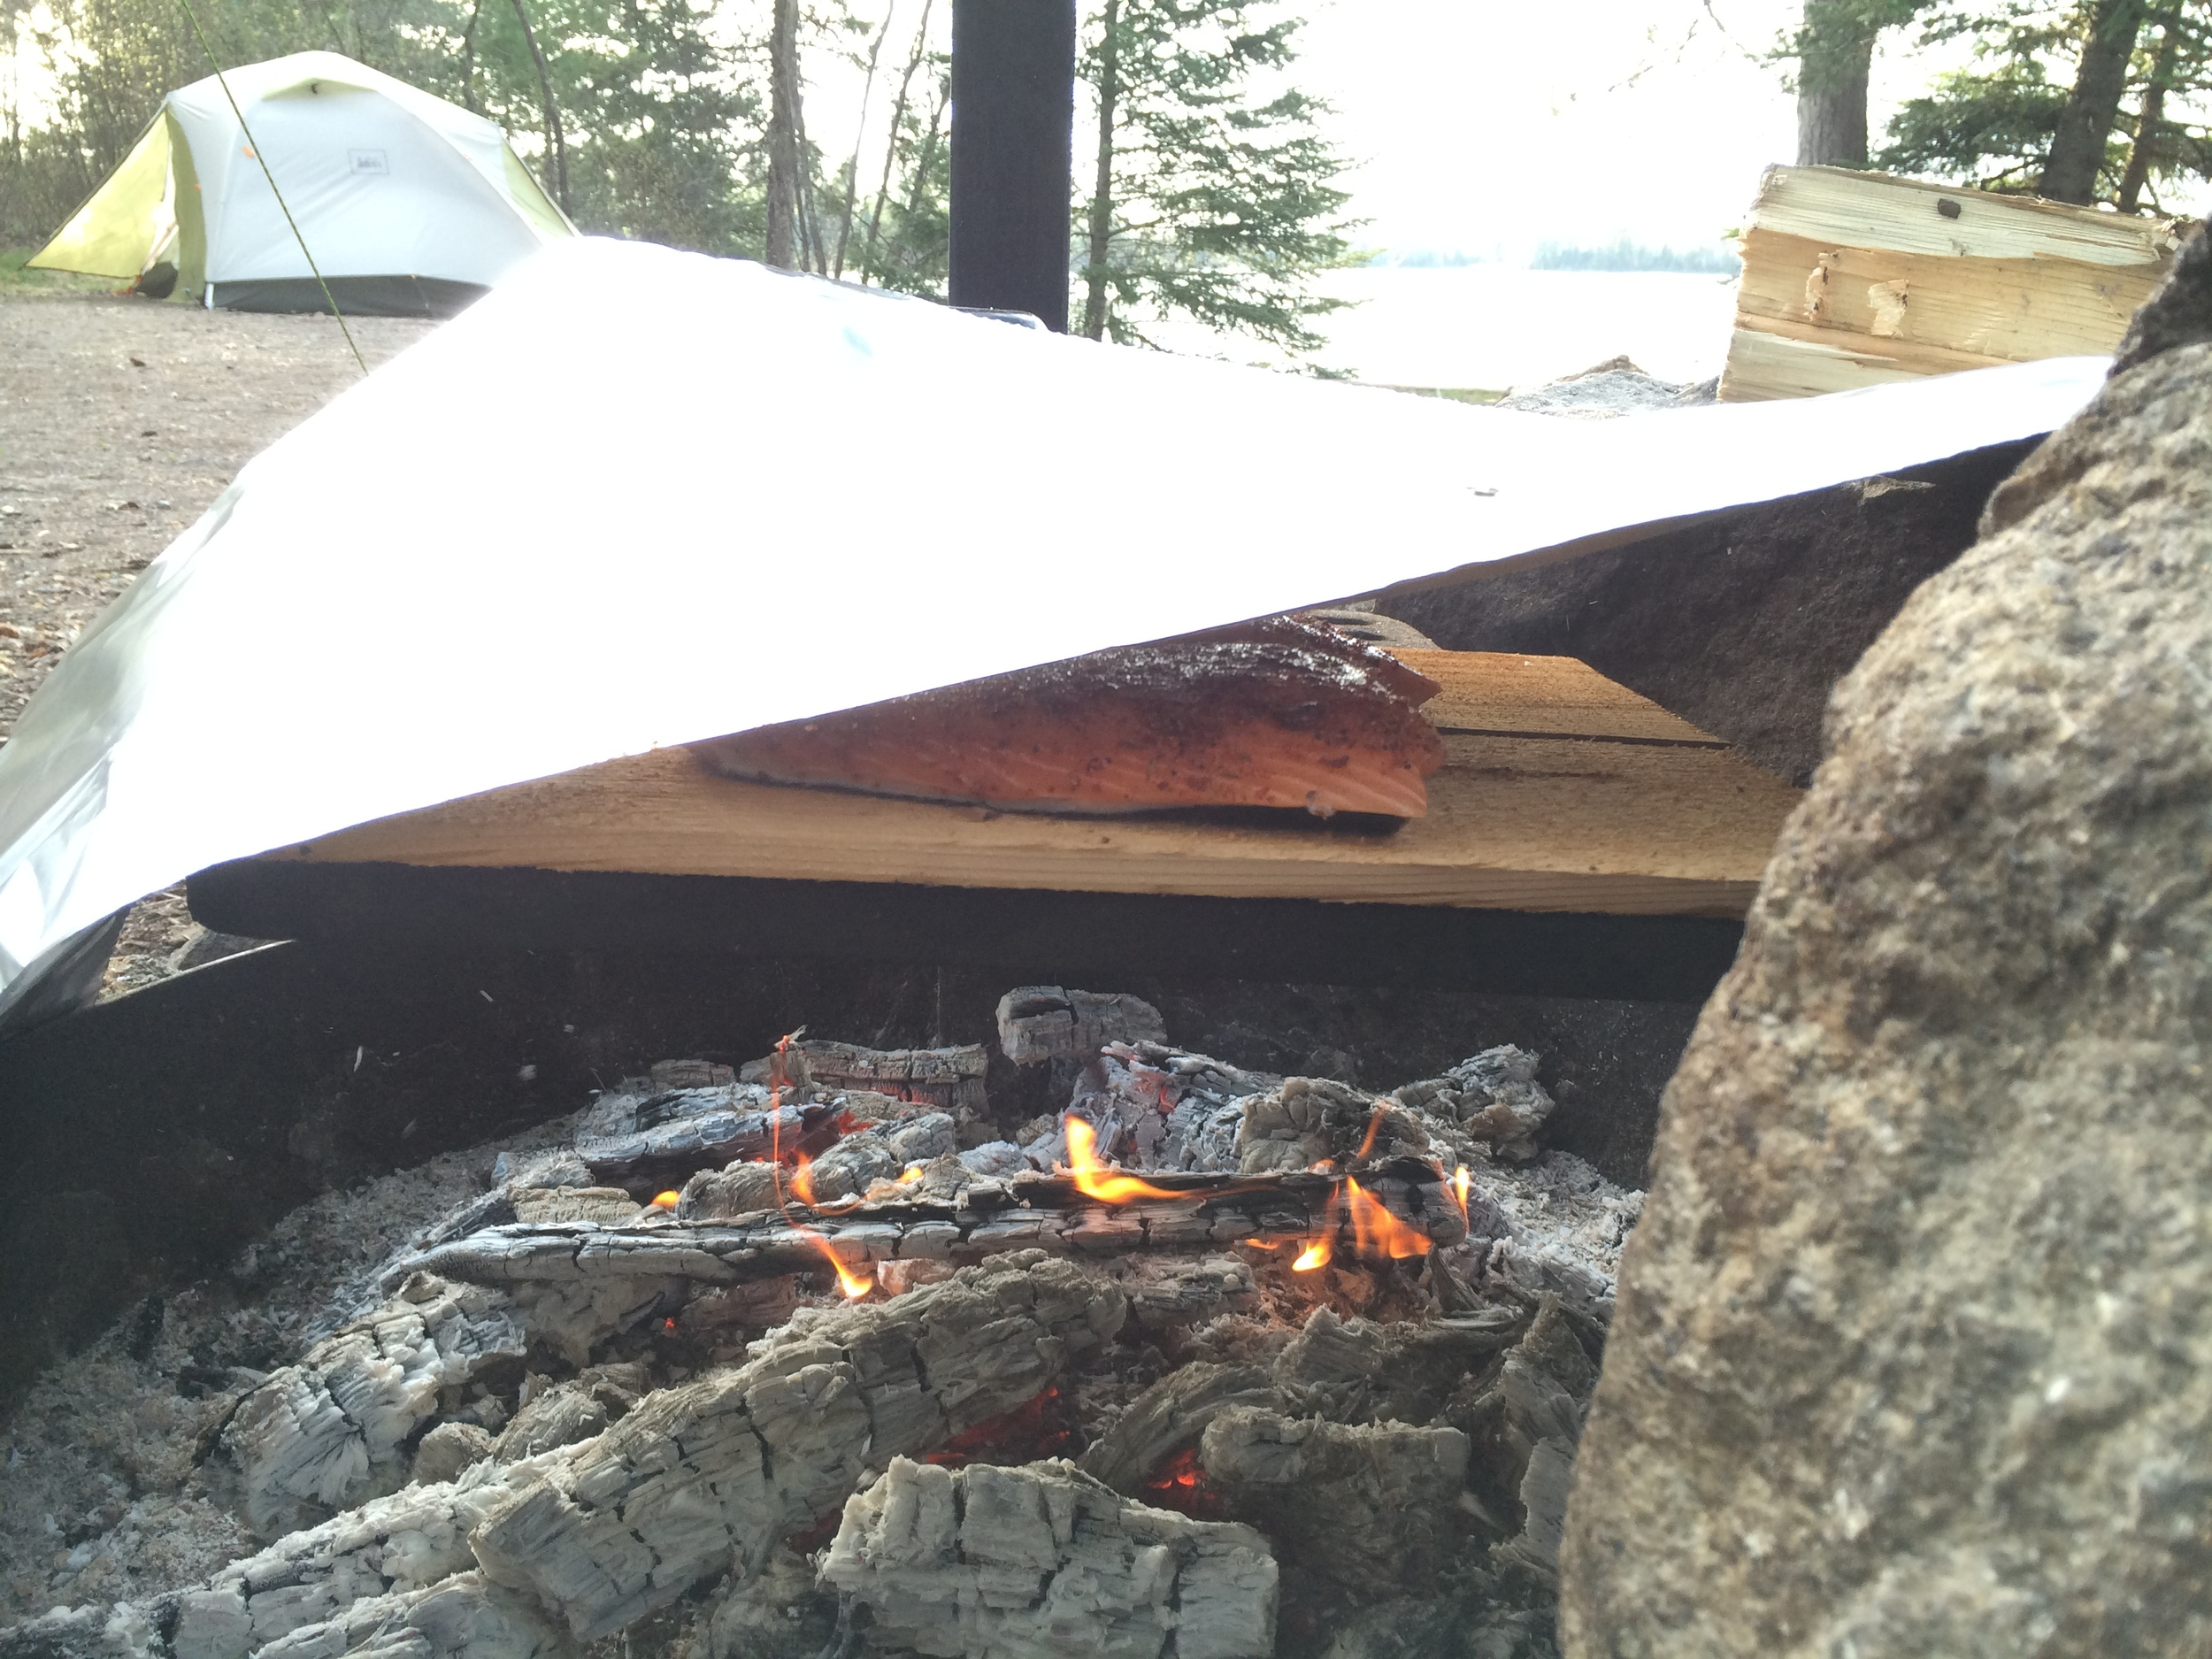 The aluminum foil kept in some of the heat to cook the salmon from all sides.